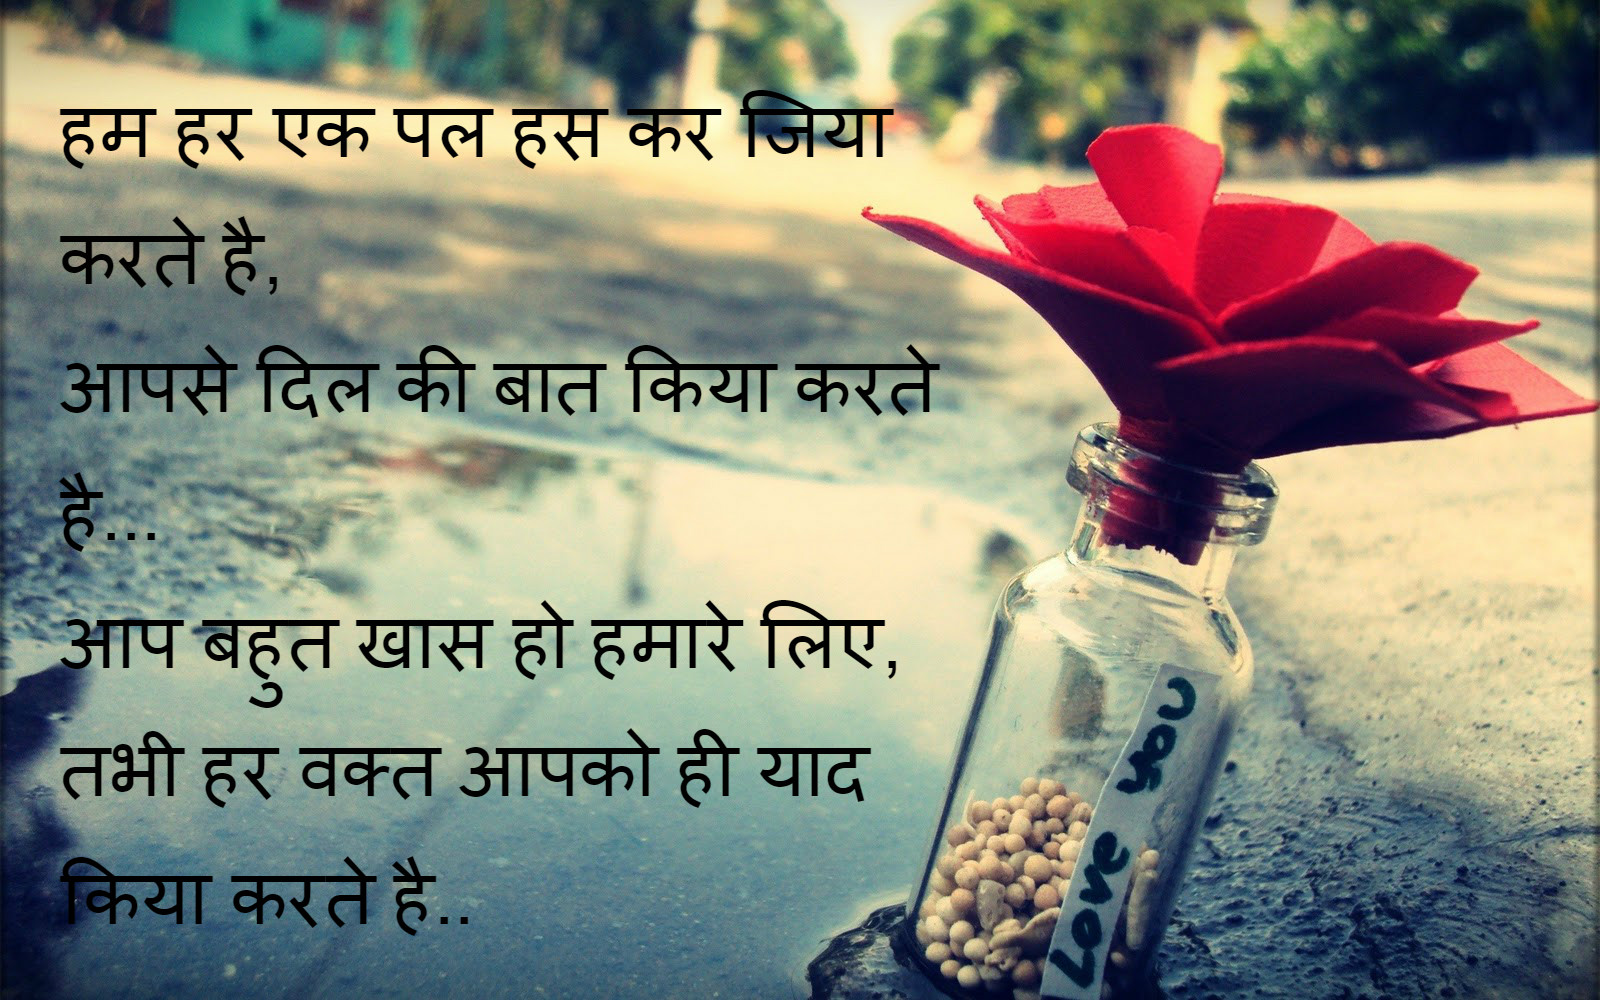 Best Hindi Love Shayri For Facebook 2016 Hindi Post Junction